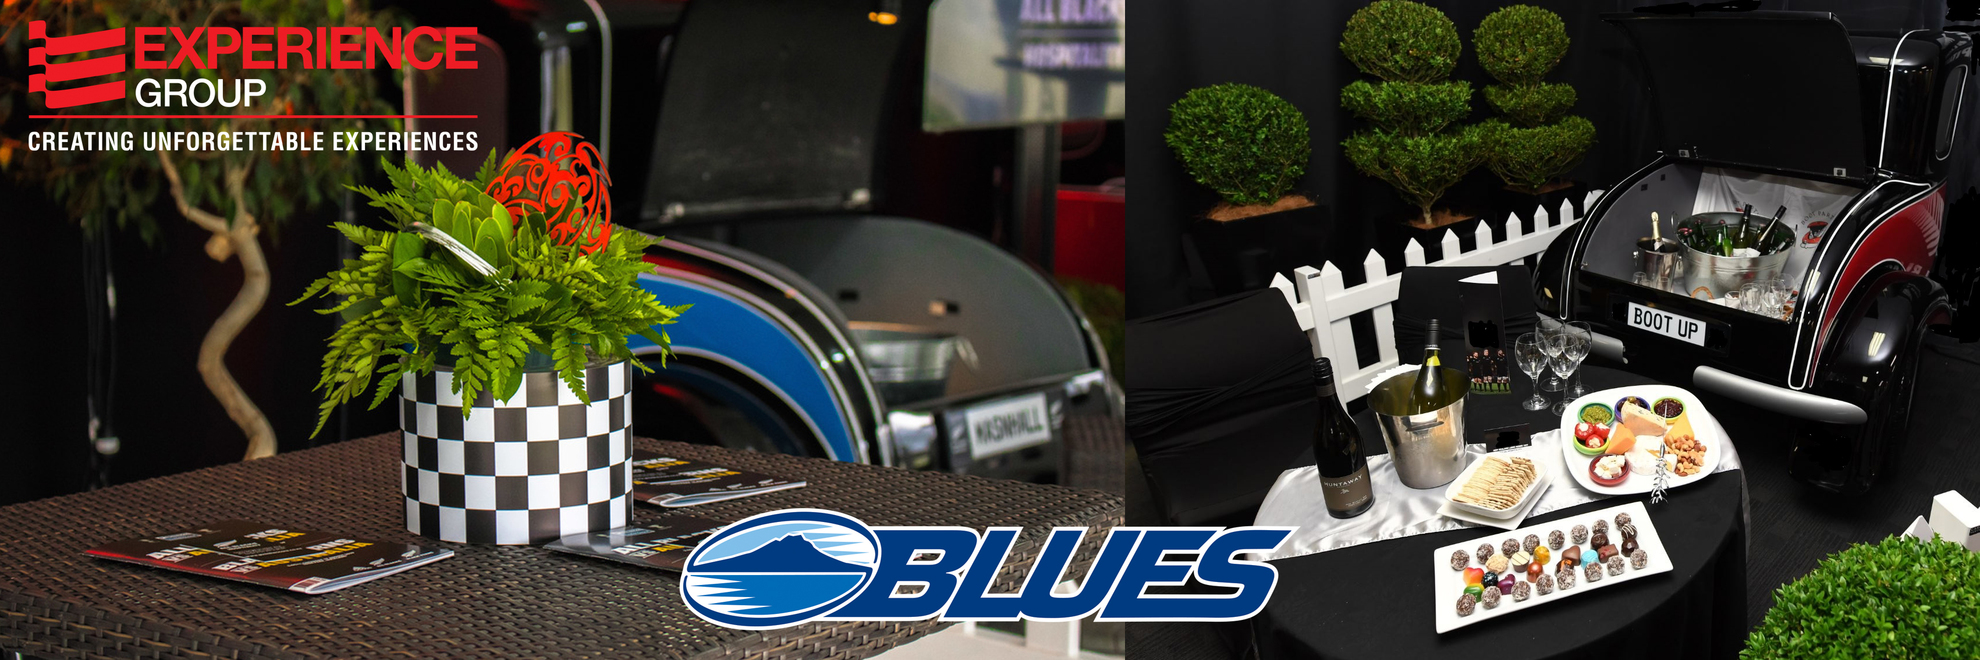 Blues Boot Party - Experience Group